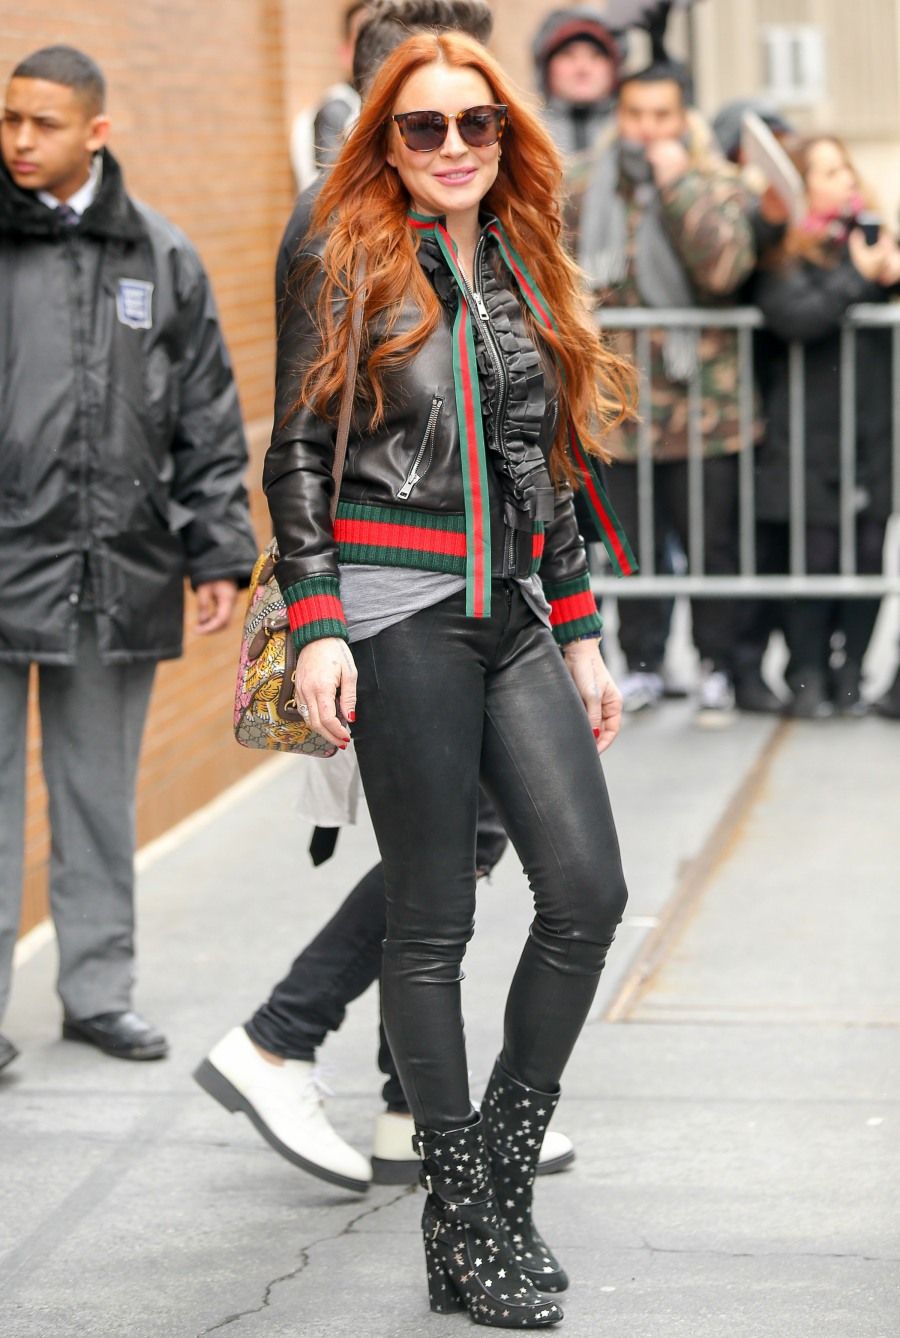 Lindsay Lohan Leaves The Set Of 'The View'